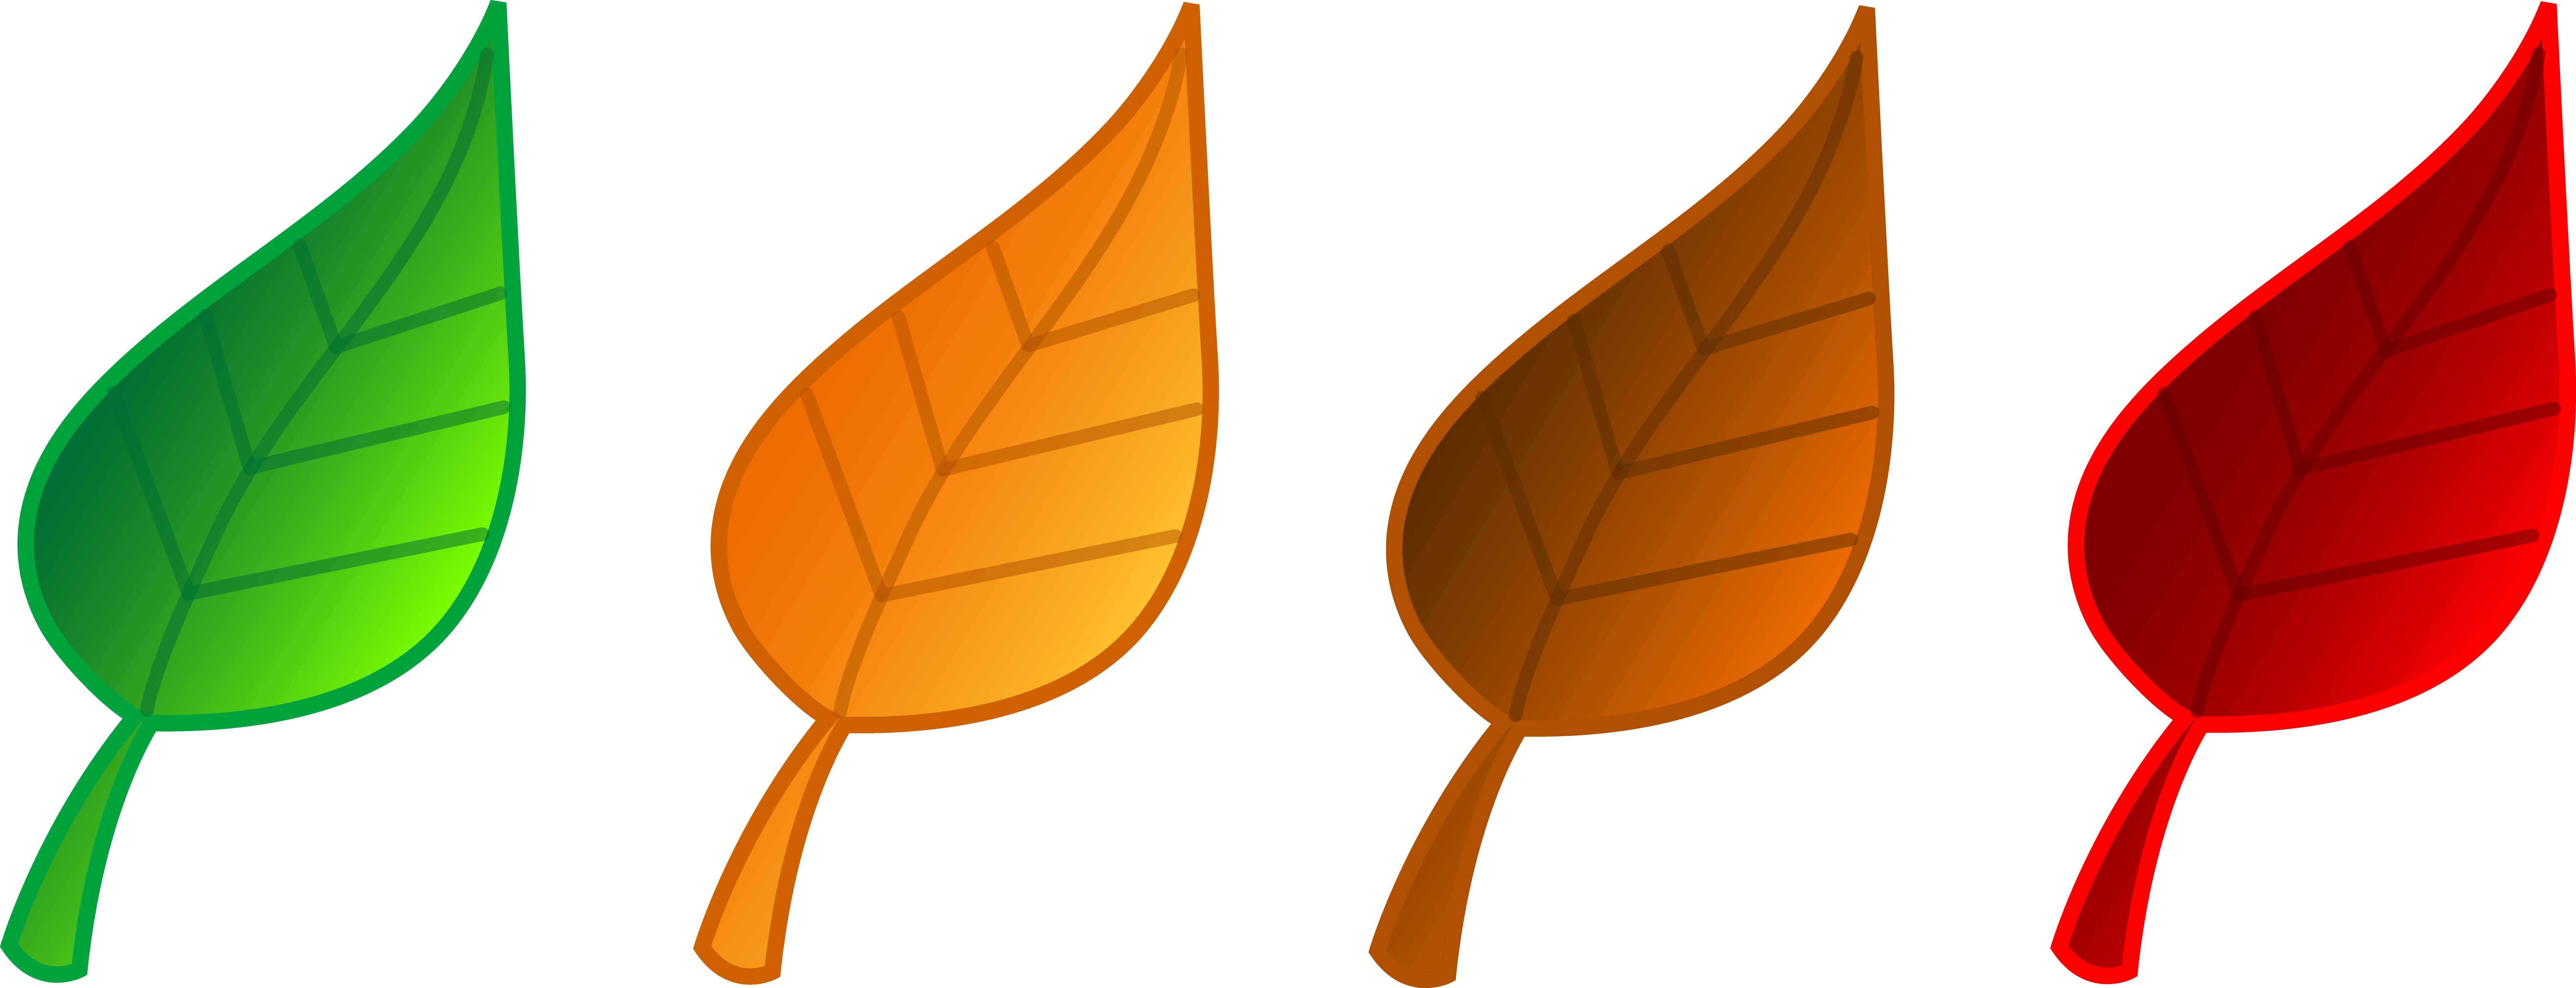 Yellow leaf clipart free clipart images